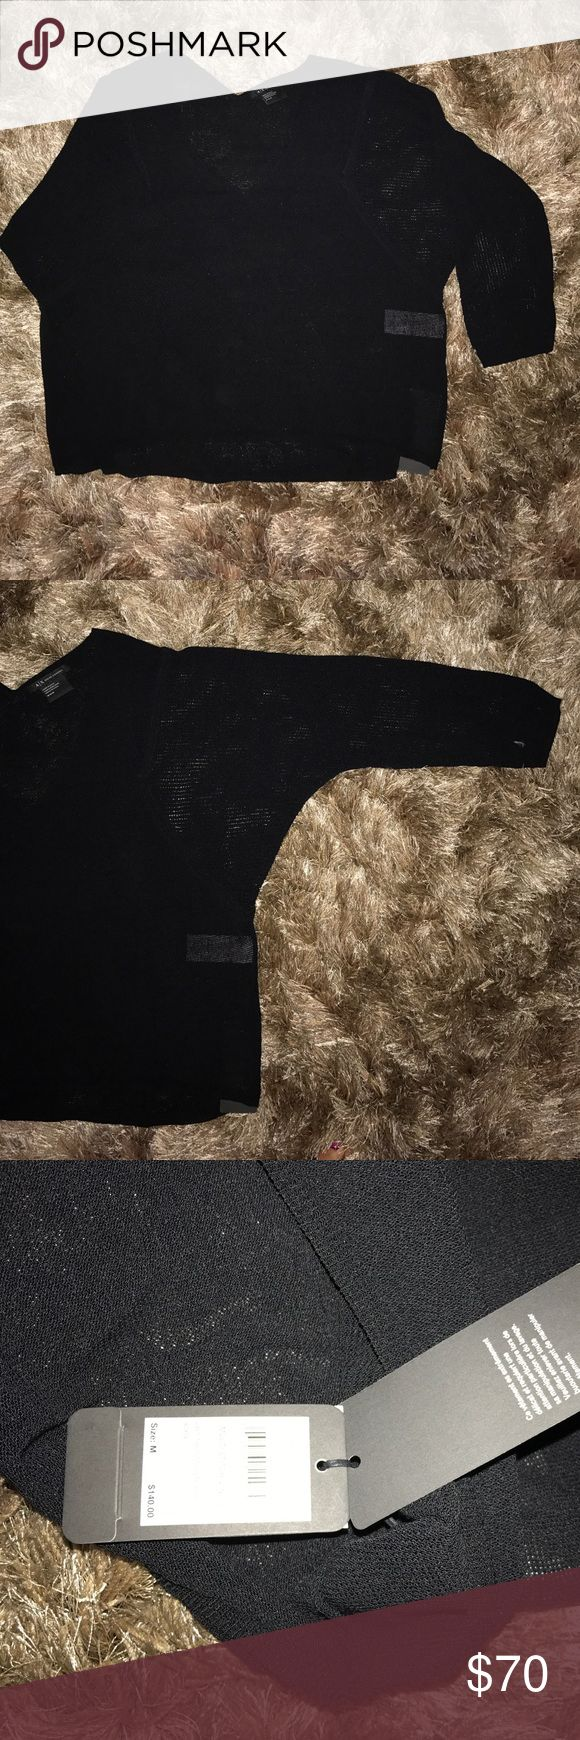 NWT A/X Armani Exchange black V-Neck Black multi stitch v-neck sweater that hangs loosely really nice. Stitching is slight sheer and has a classy look. 2 available in M. I also have one available in S in Black and another in S in white, so be sure to check my closet to see if they are still available.  Happy shopping Poshers! A/X Armani Exchange Sweaters V-Necks